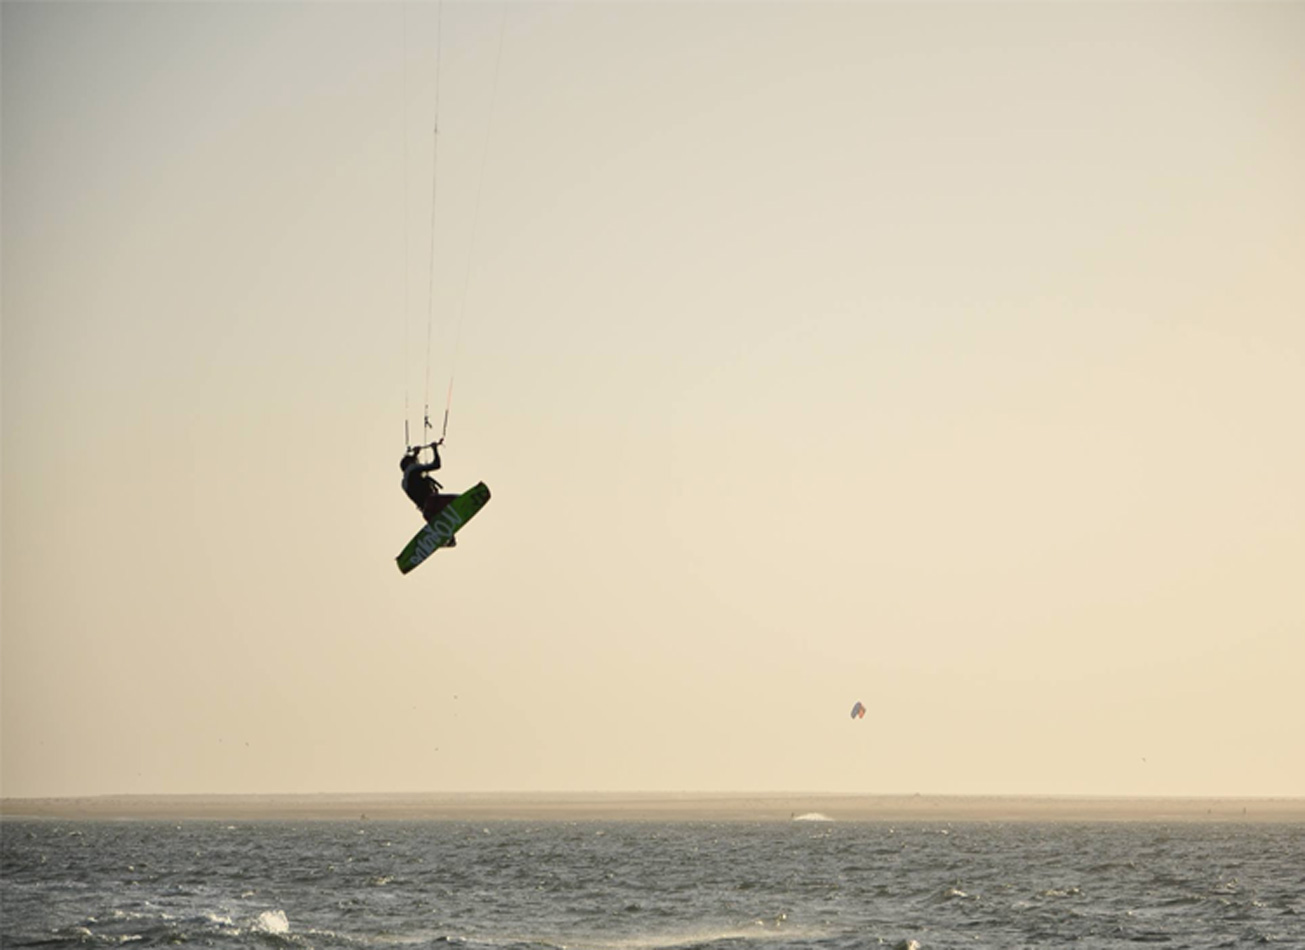 Vimigo-Recovered-Kite-surf